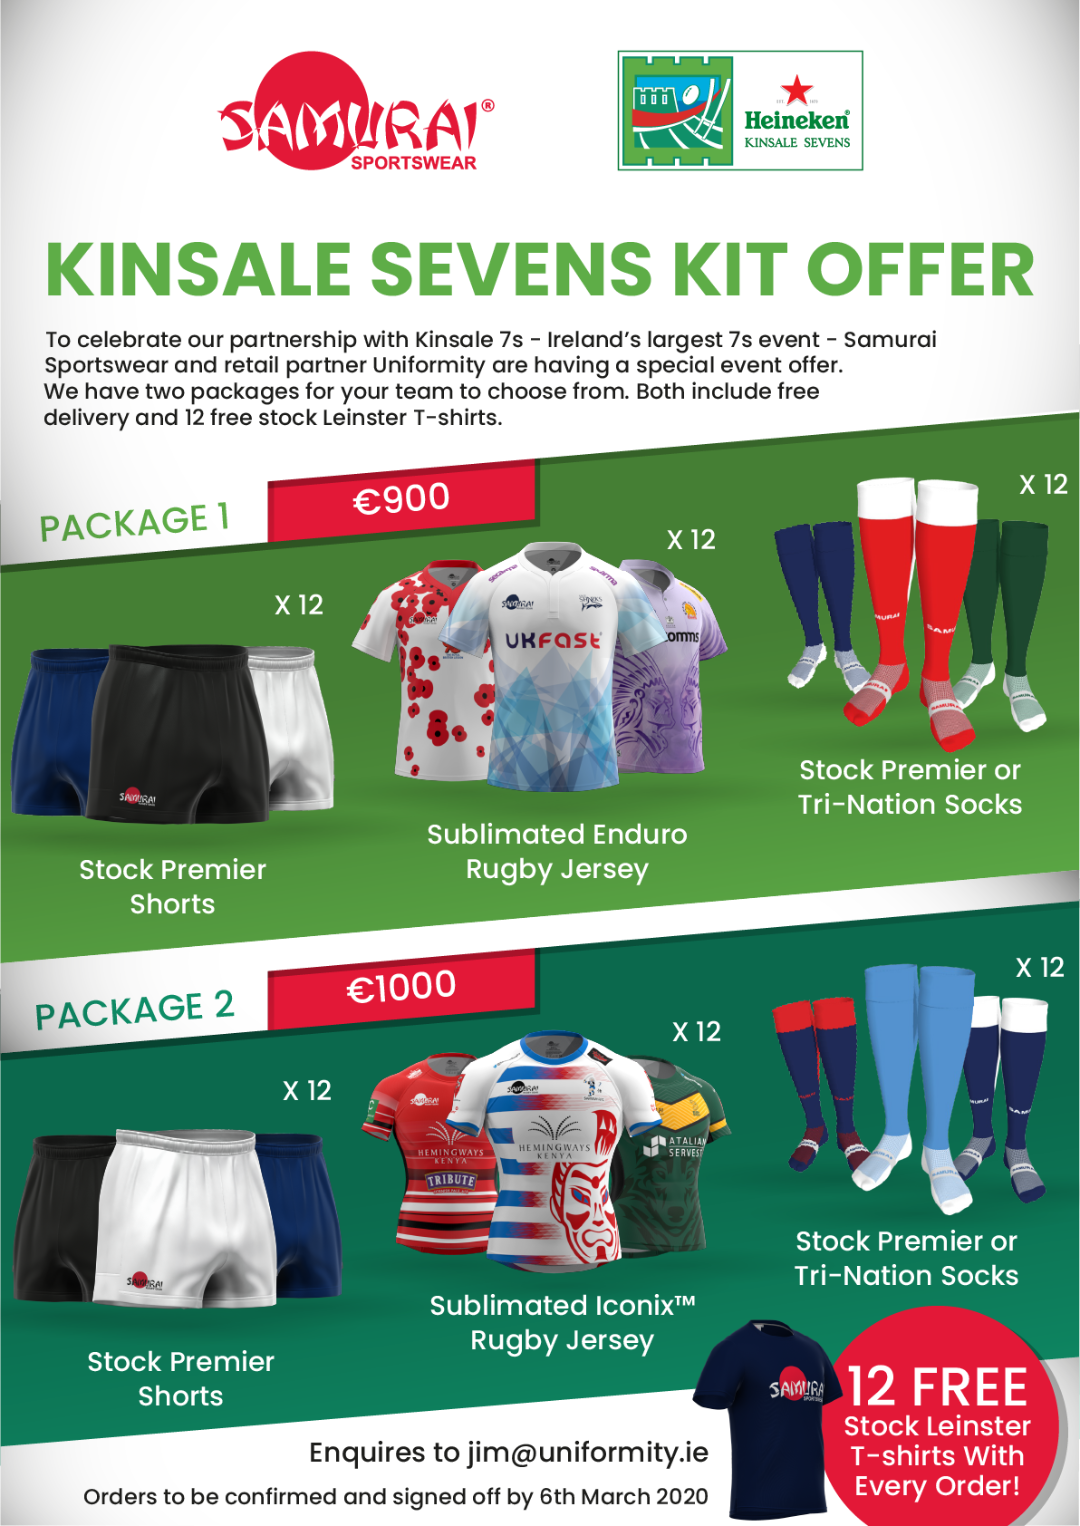 Kinsale Sevens Kit Offer